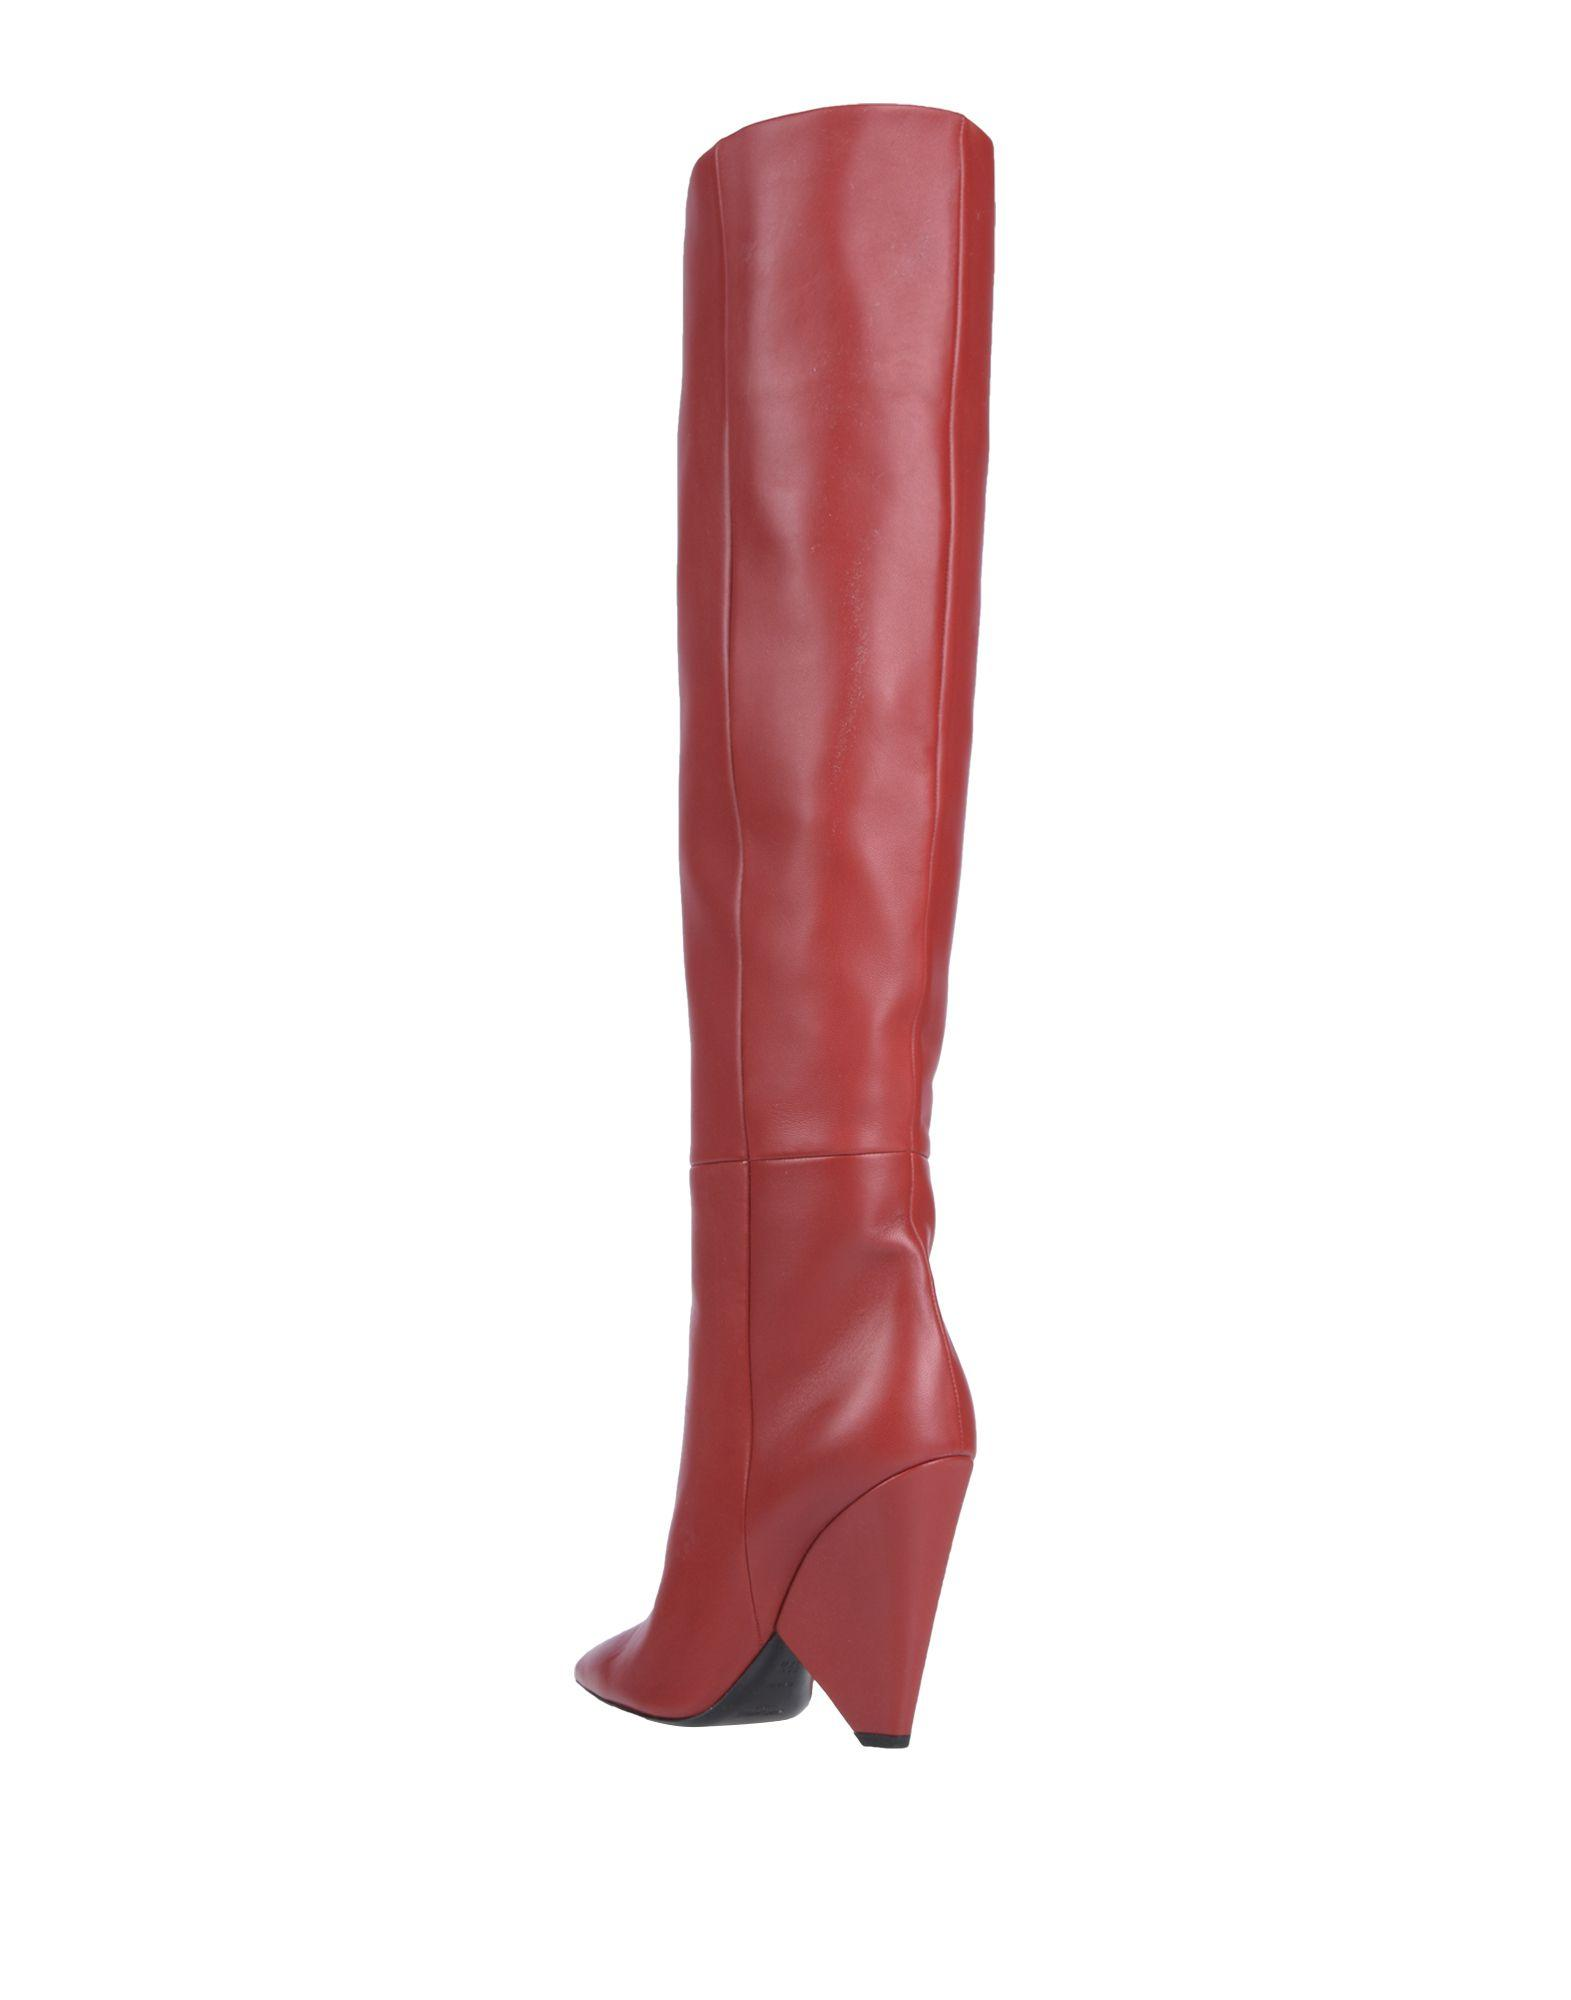 535a48793d0 Saint Laurent Boots in Red - Lyst